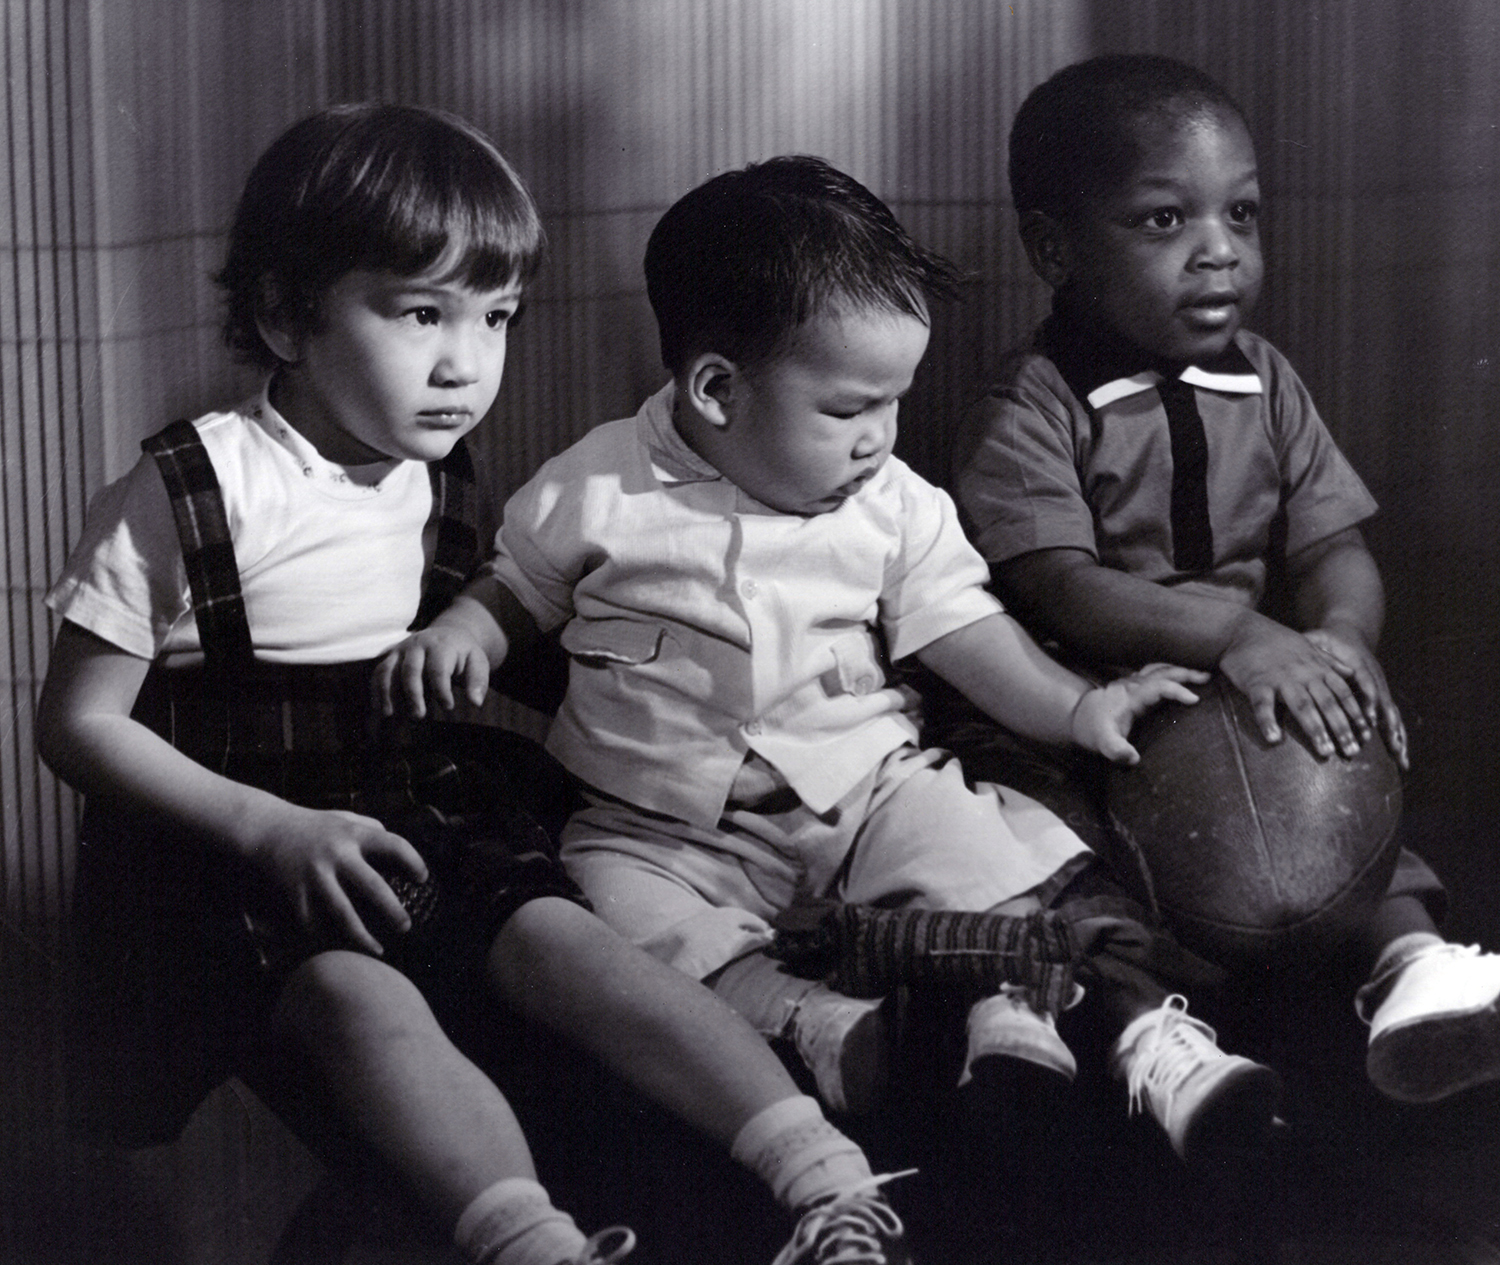 1969   CHSW has placed more than 28,000 children for adoption in its history, peaking with 568 in a single year.